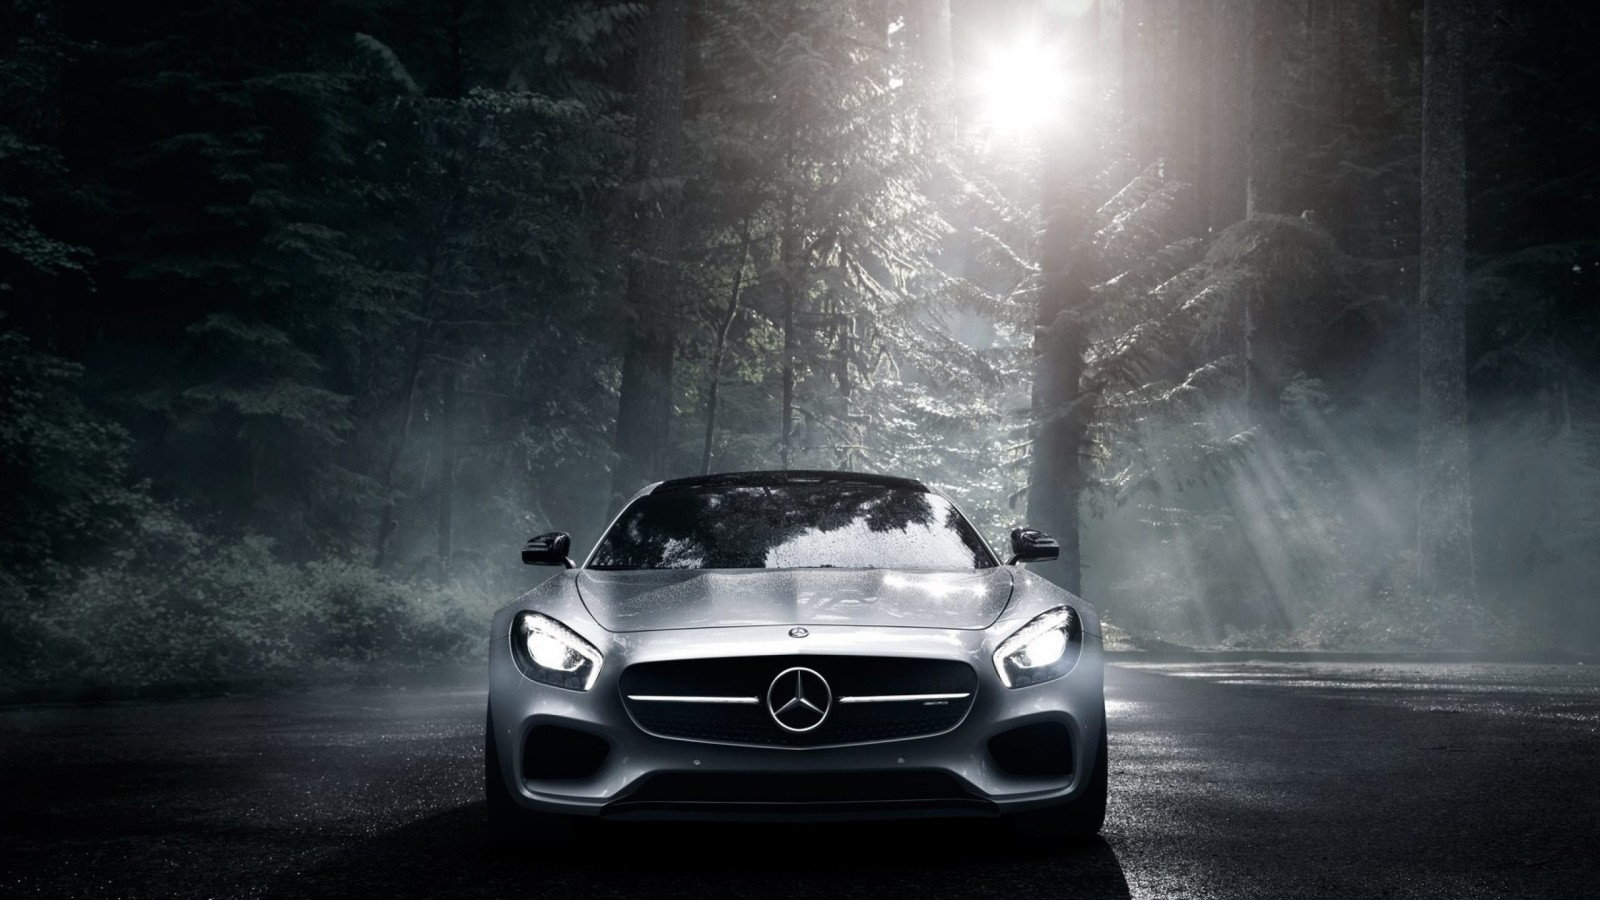 5 Best Mercedes Benz Christmas Wallpapers Mbworld Images, Photos, Reviews